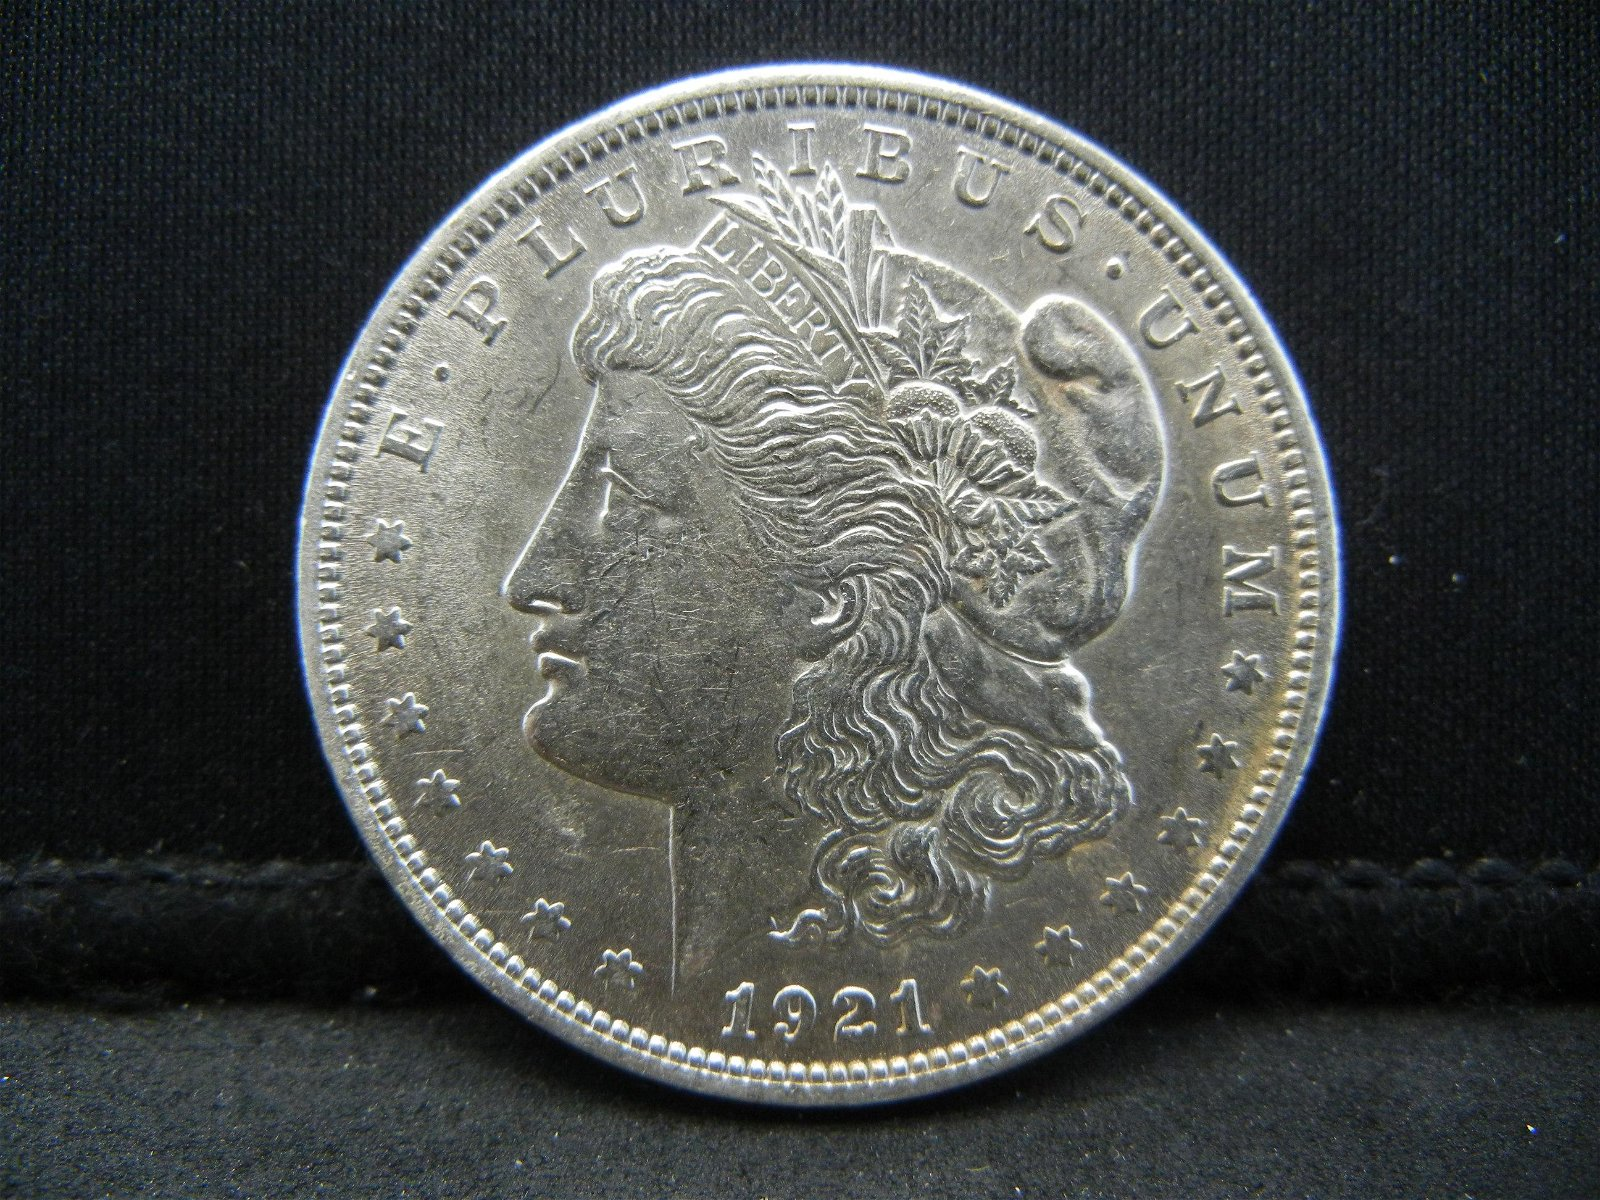 1921 Morgan Silver Dollar - 90% Silver - High Grade!